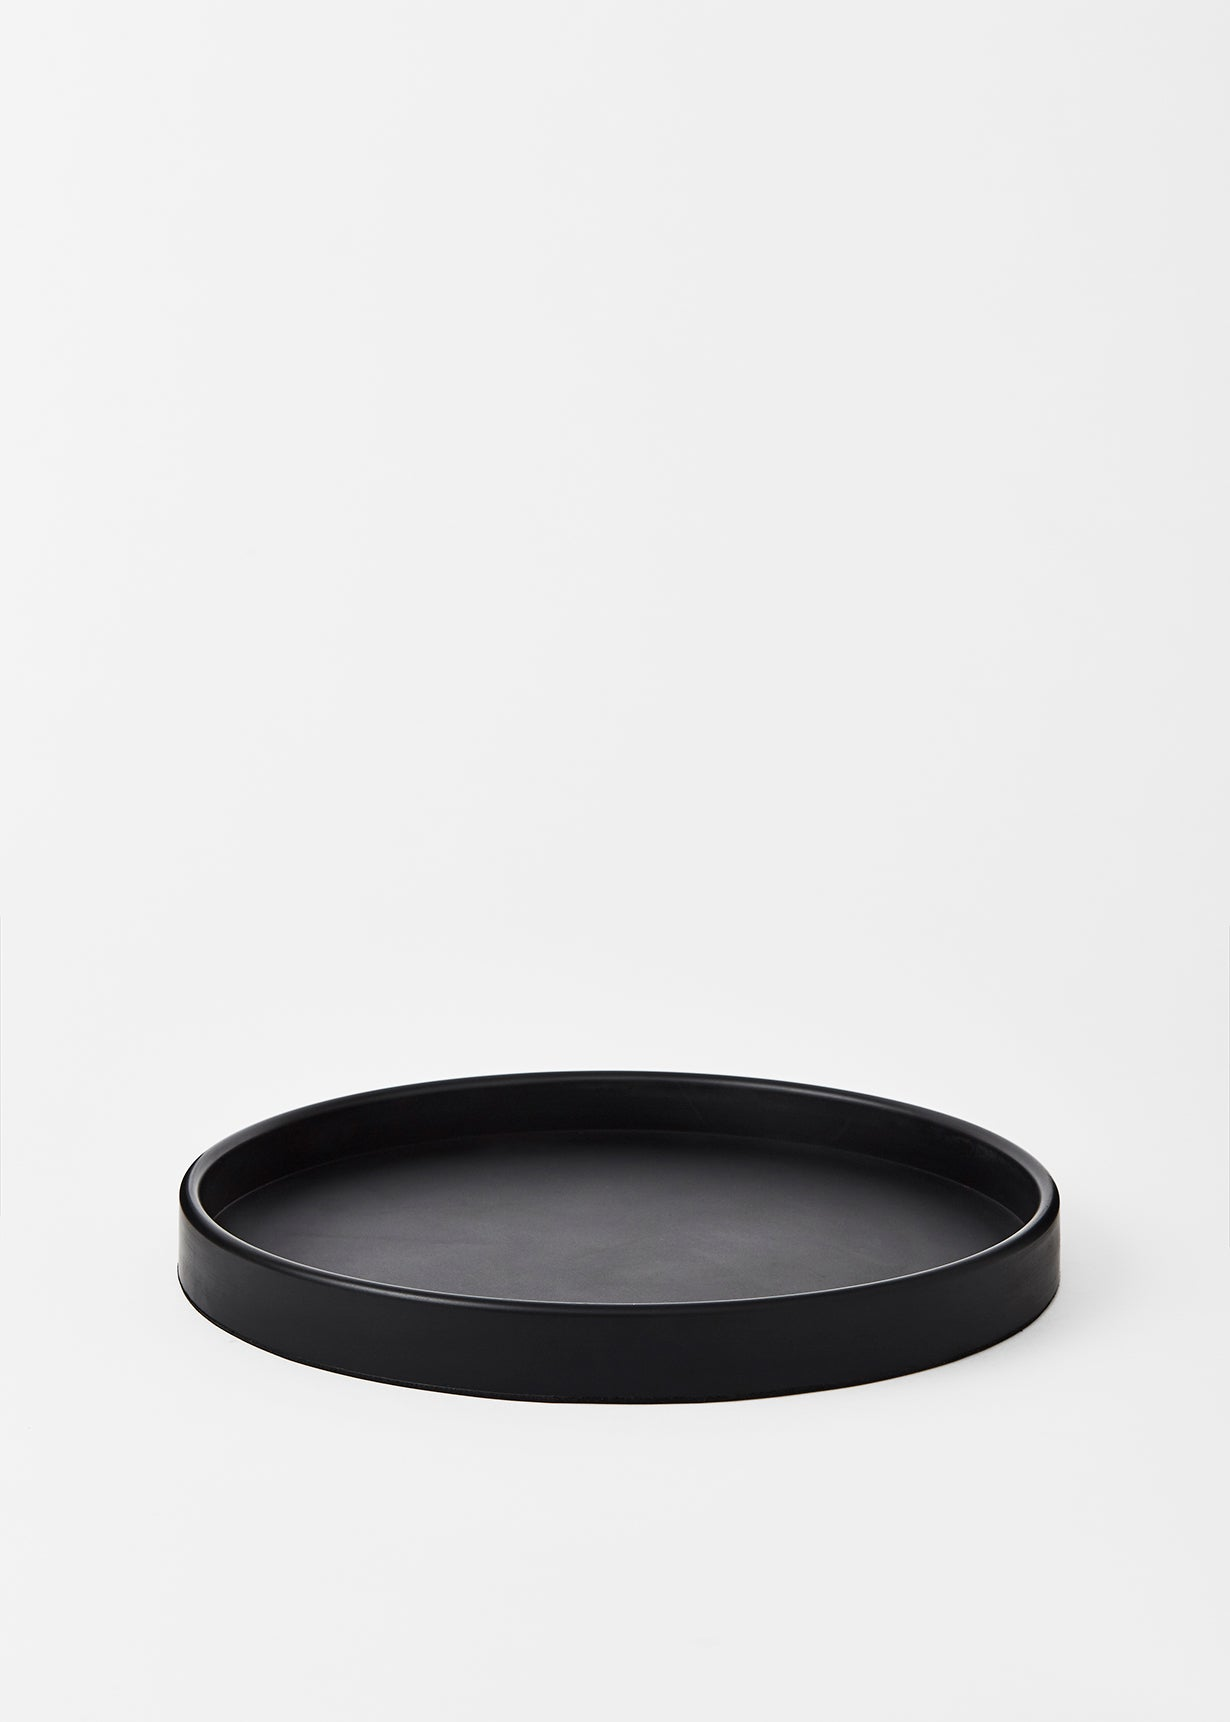 Large Black Round Rubber Tray